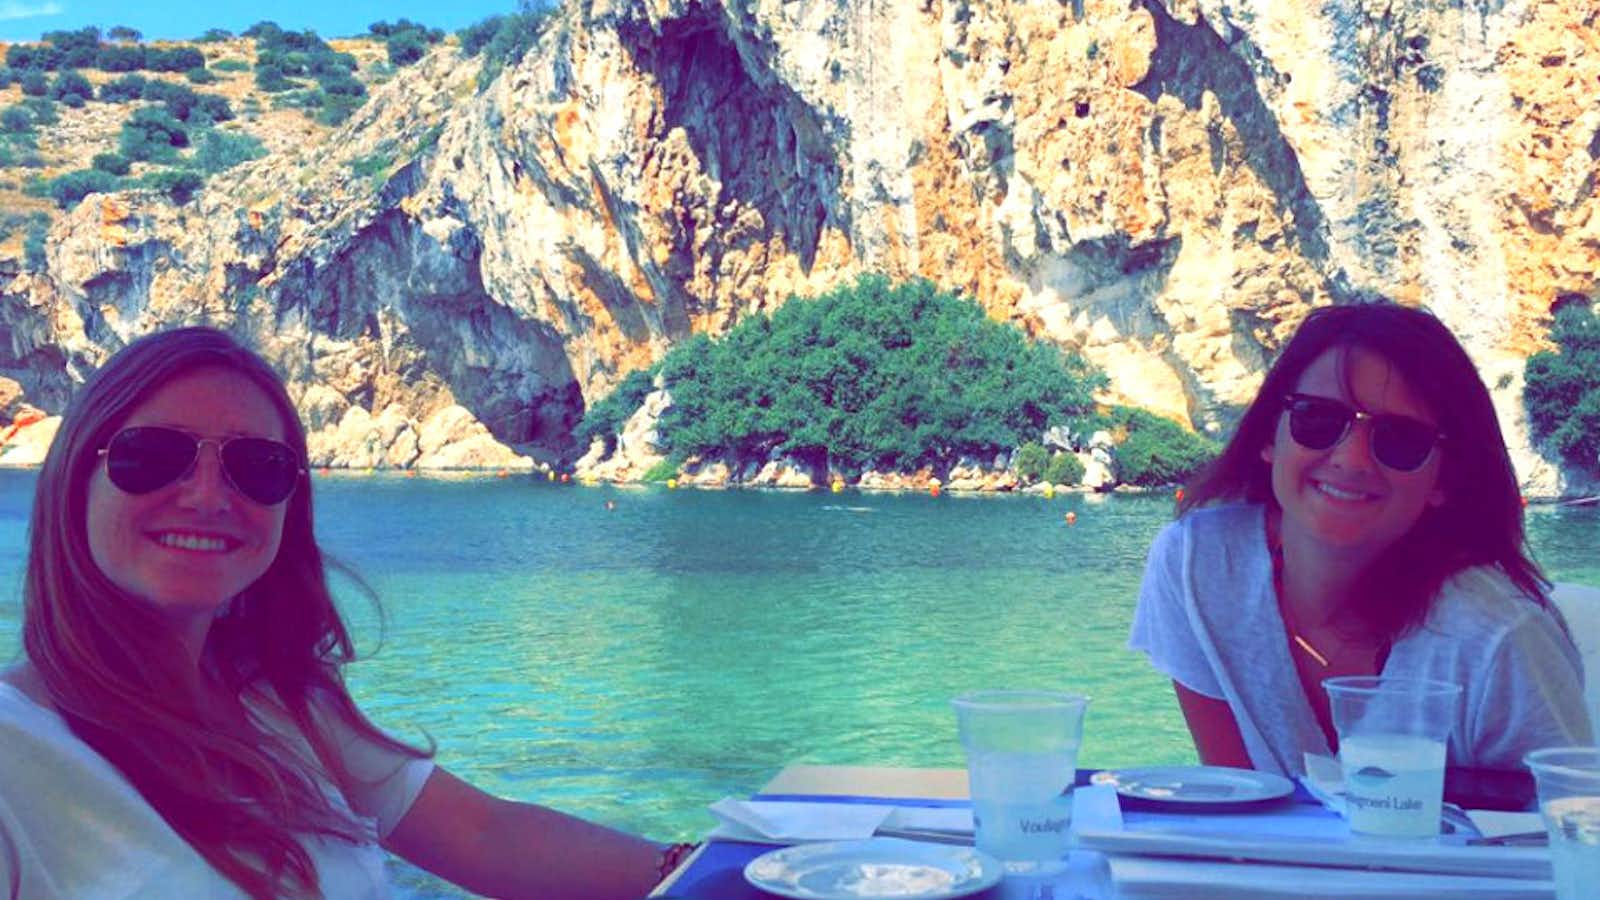 Lunch overlooking the lake